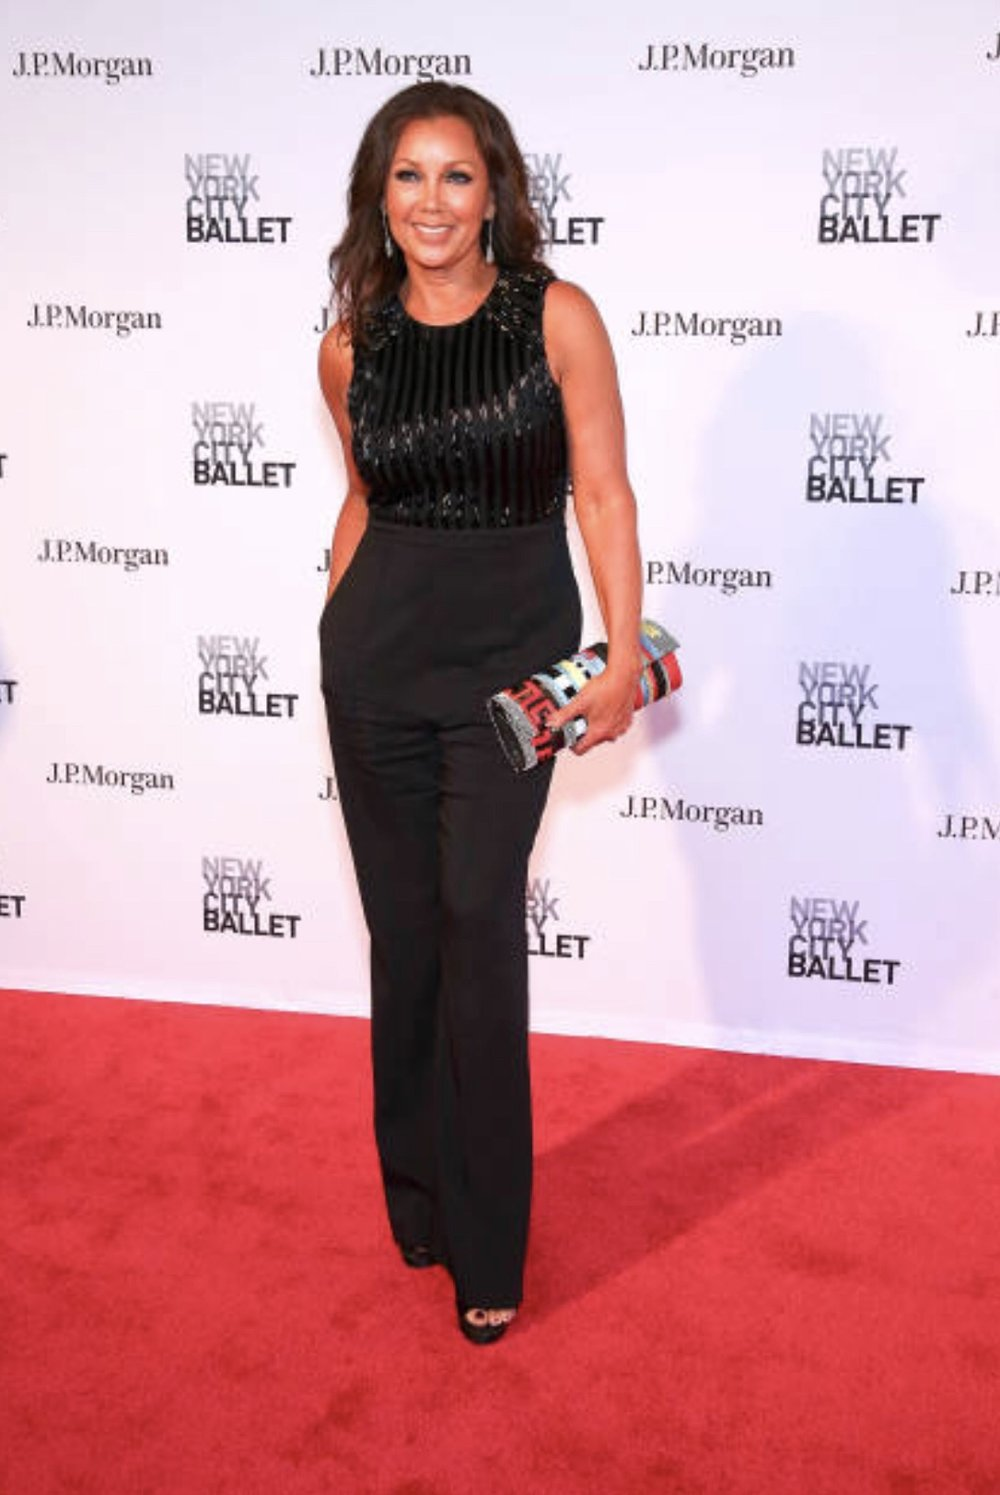 Vanessa Williams attends New York City Ballet 2018 Spring Gala at Lincoln Center.